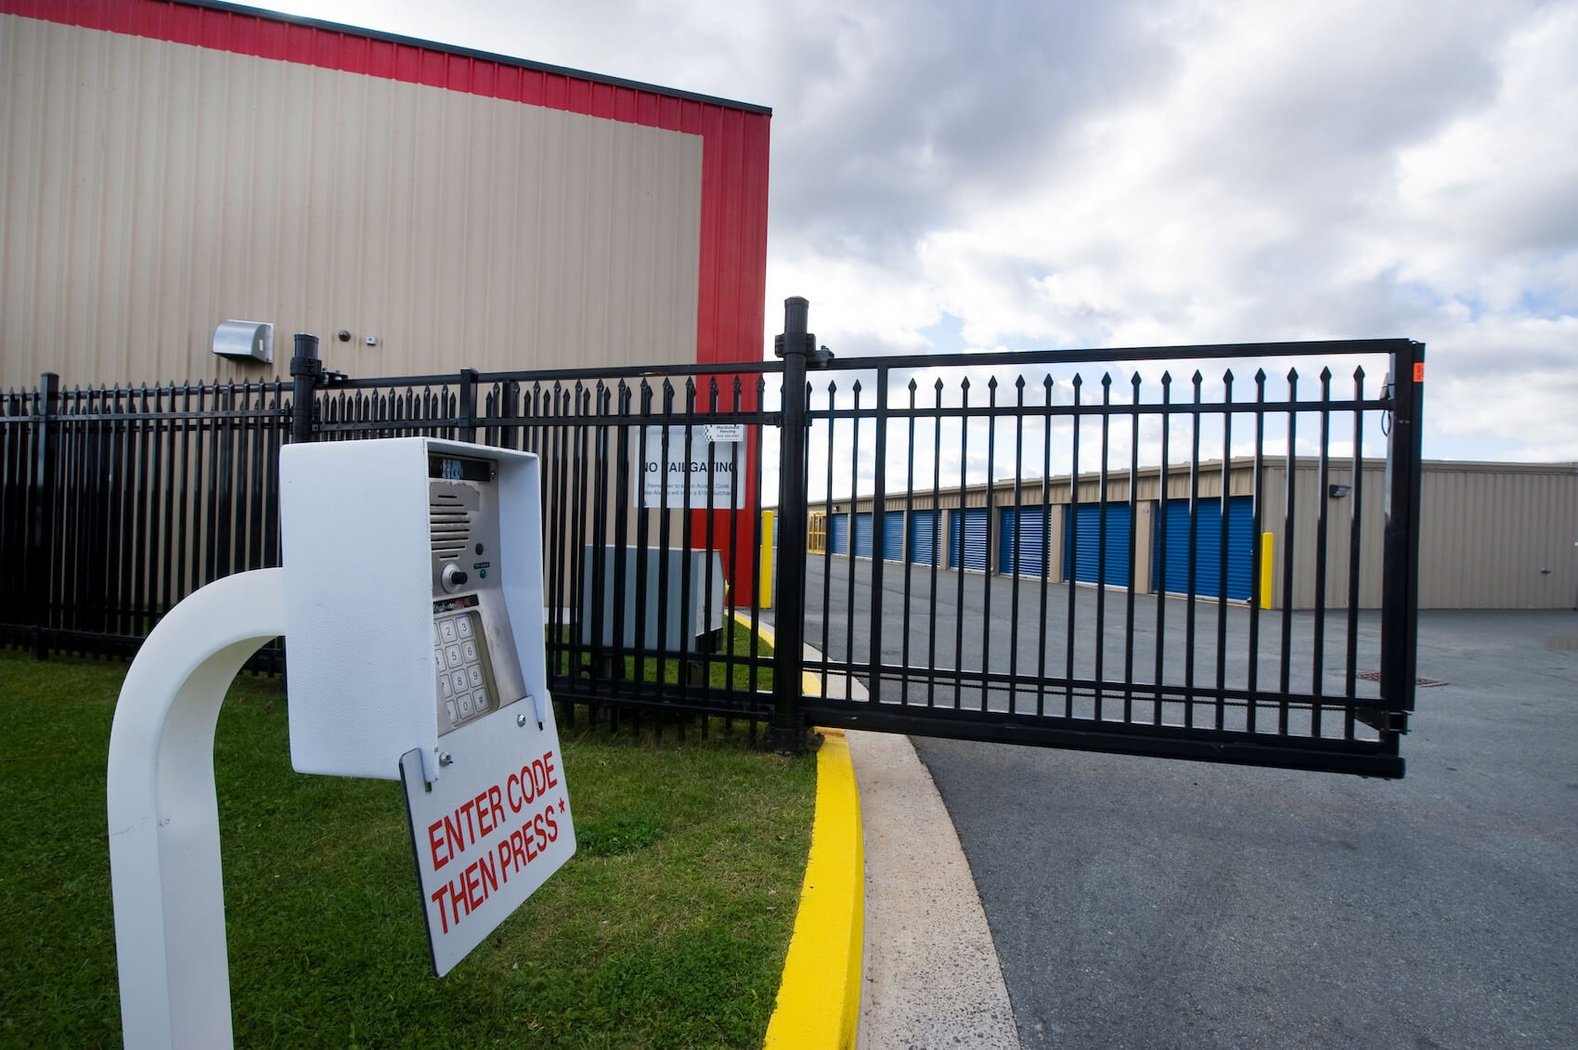 Rent Bedford storage units at 231 Damascus Rd. We offer a wide-range of affordable self storage units and your first 4 weeks are free!